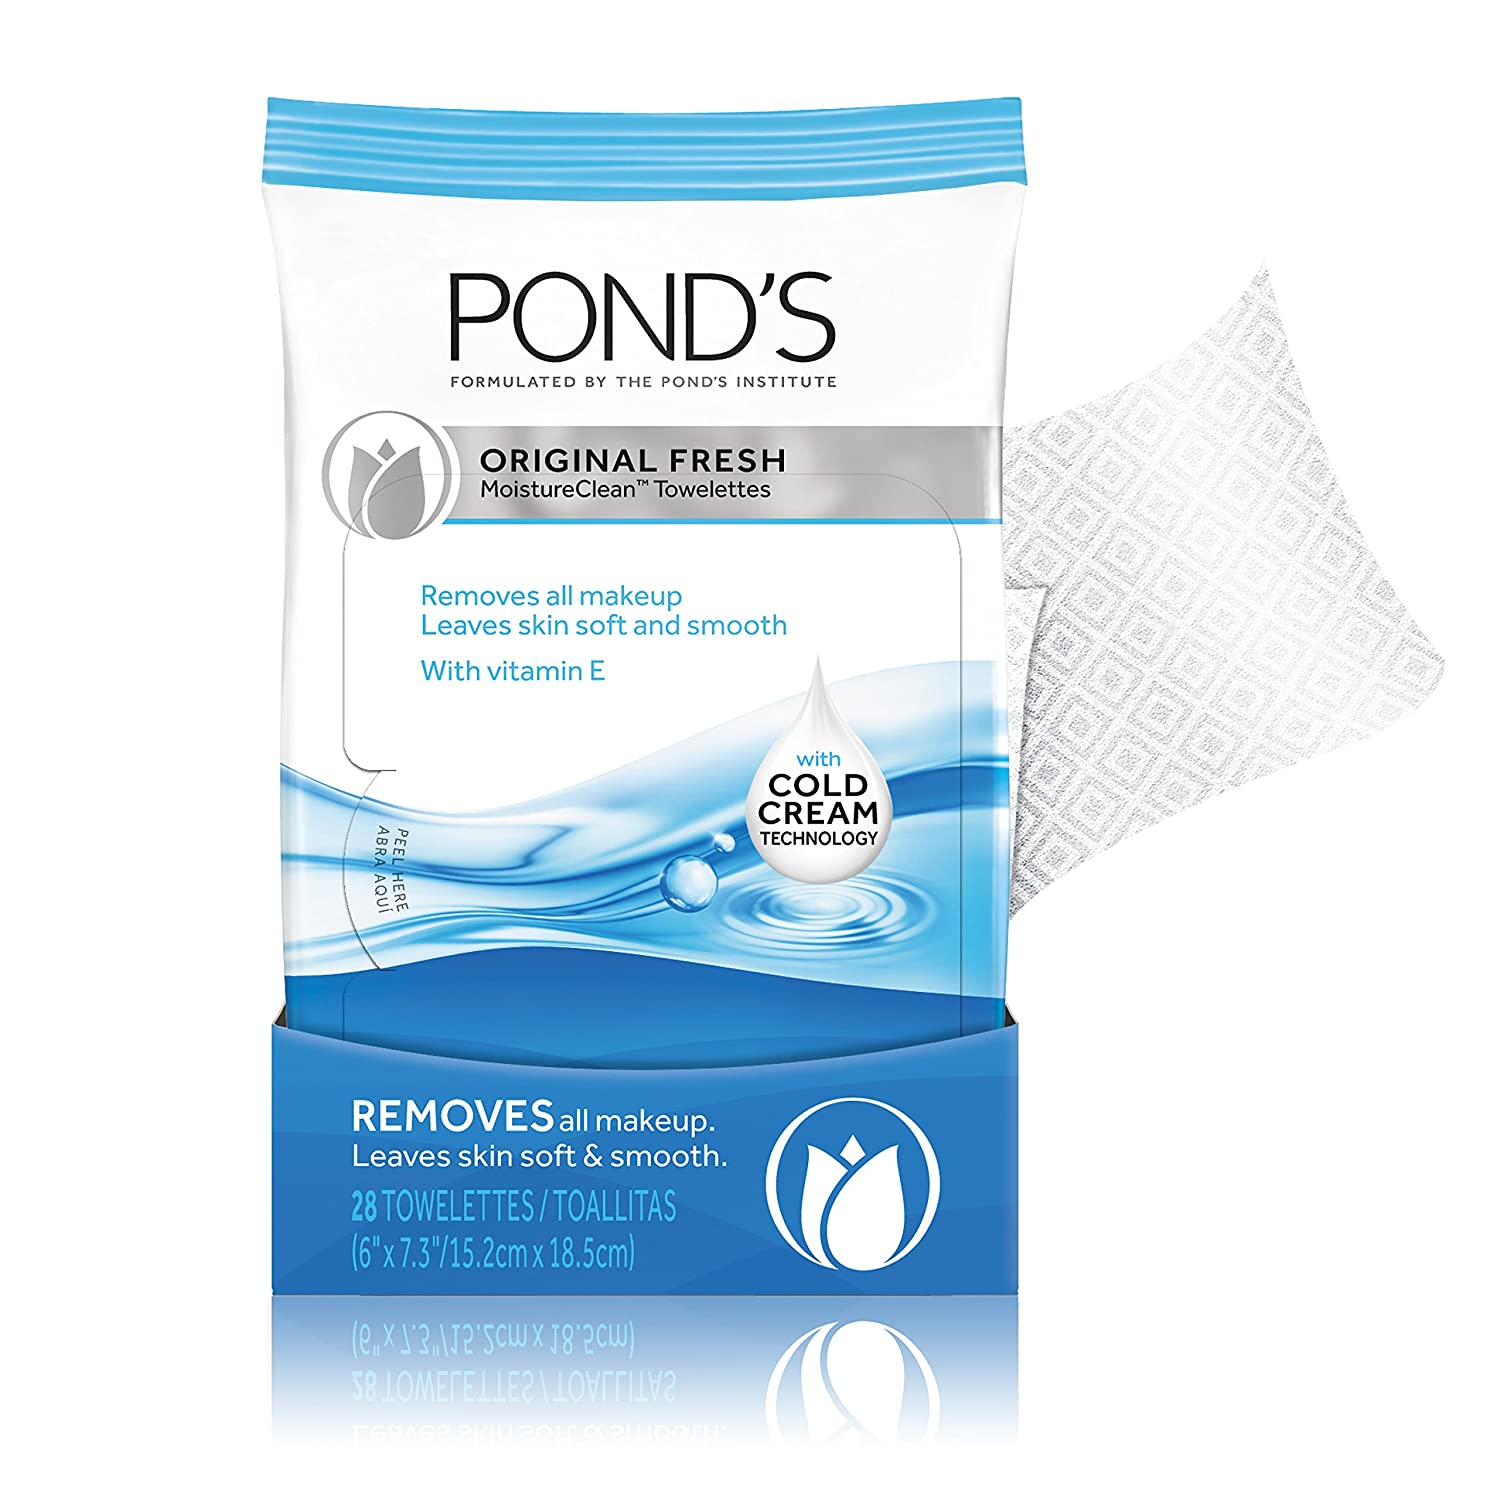 Amazon.com: Ponds Moisture Clean Towelettes, Original Fresh 28 Count: Prime Pantry